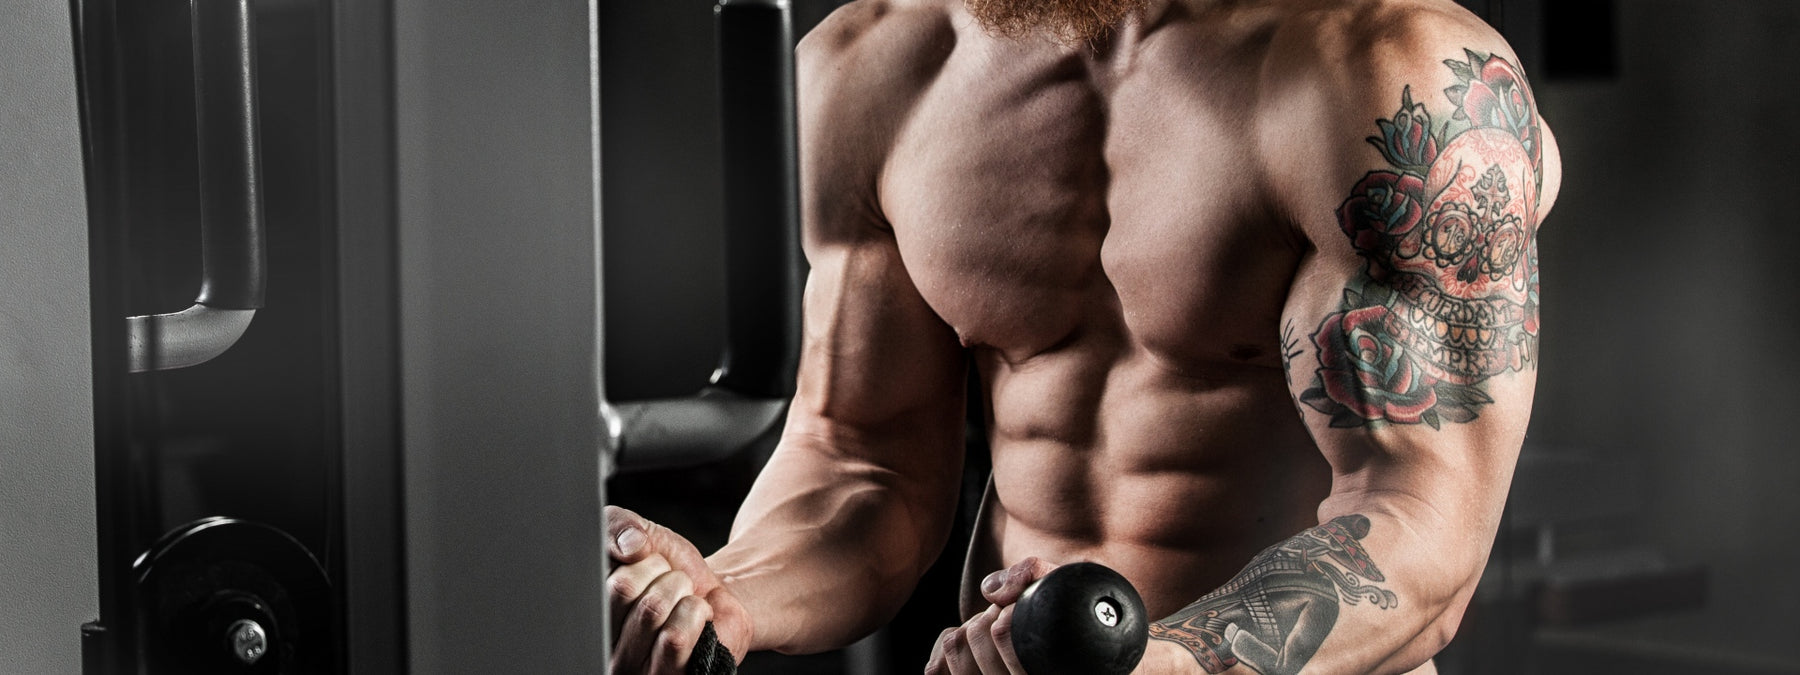 Red, White, and GAINZ Sleeve-Splitting Arm Workout